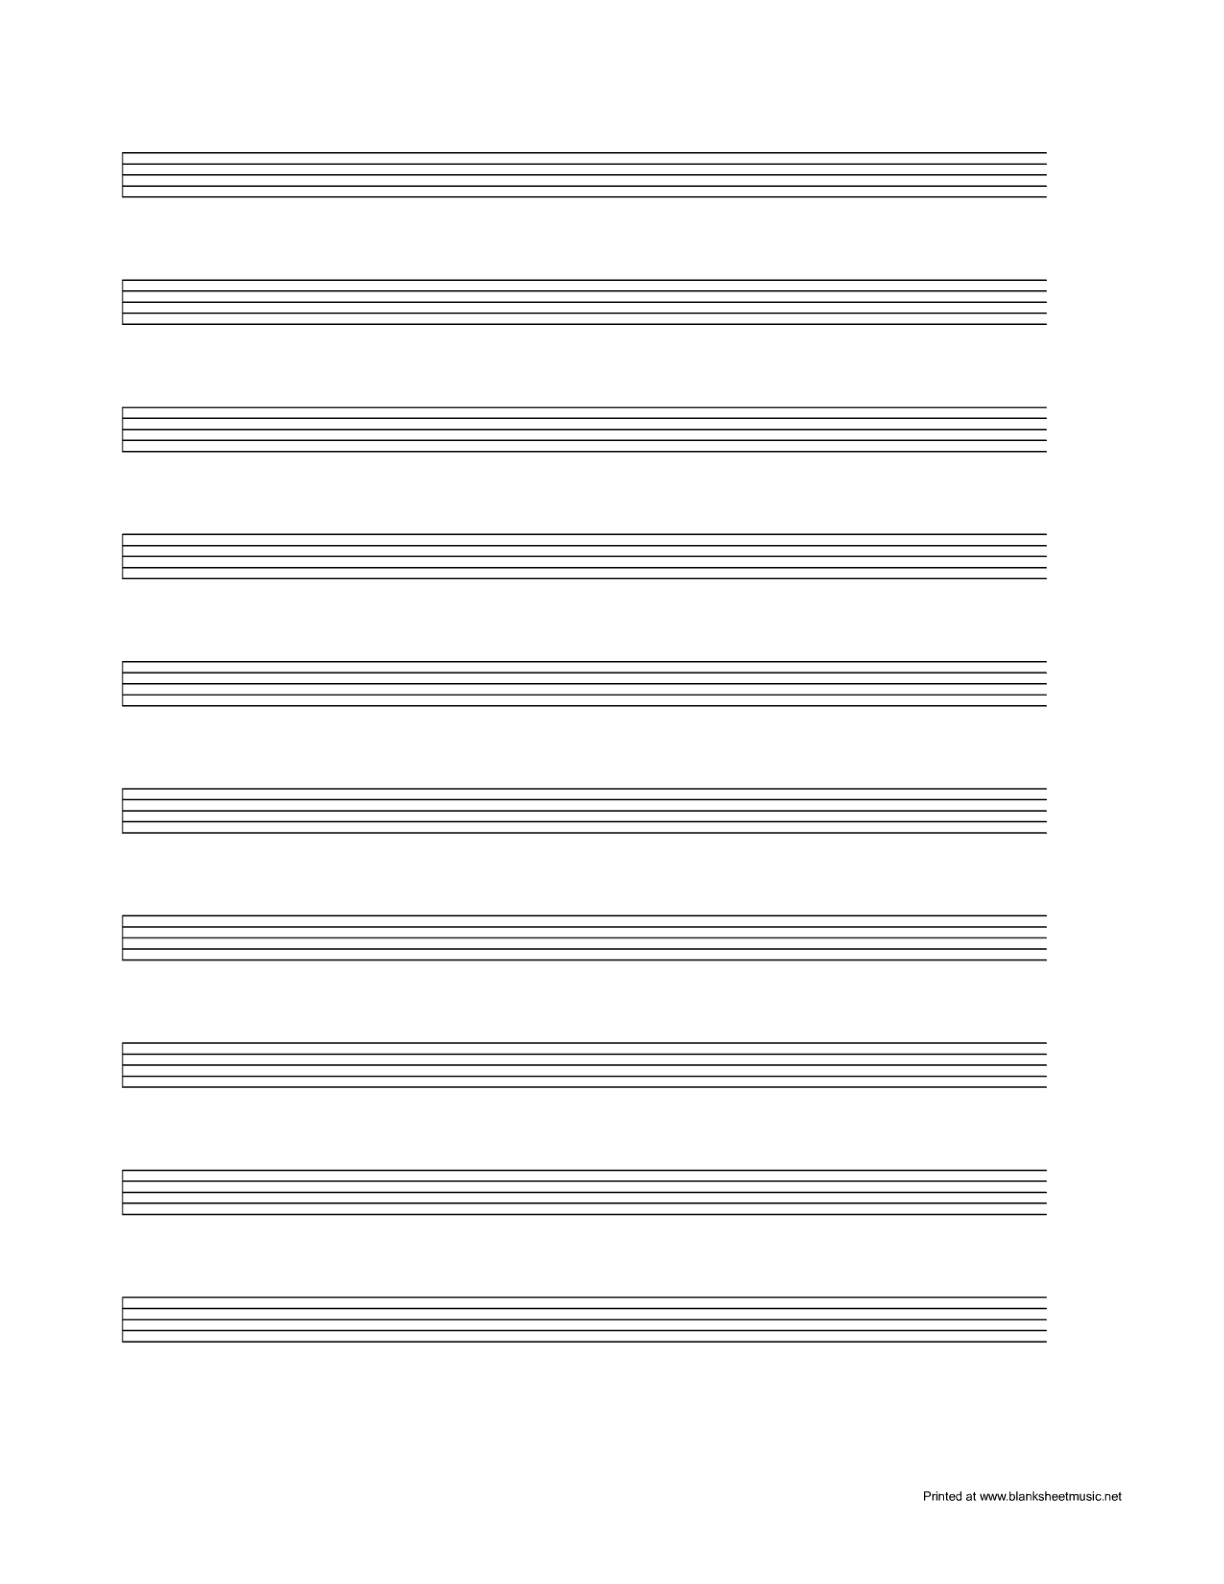 Free Blank Staff Cliparts, Download Free Clip Art, Free Clip Art On - Free Printable Blank Sheet Music